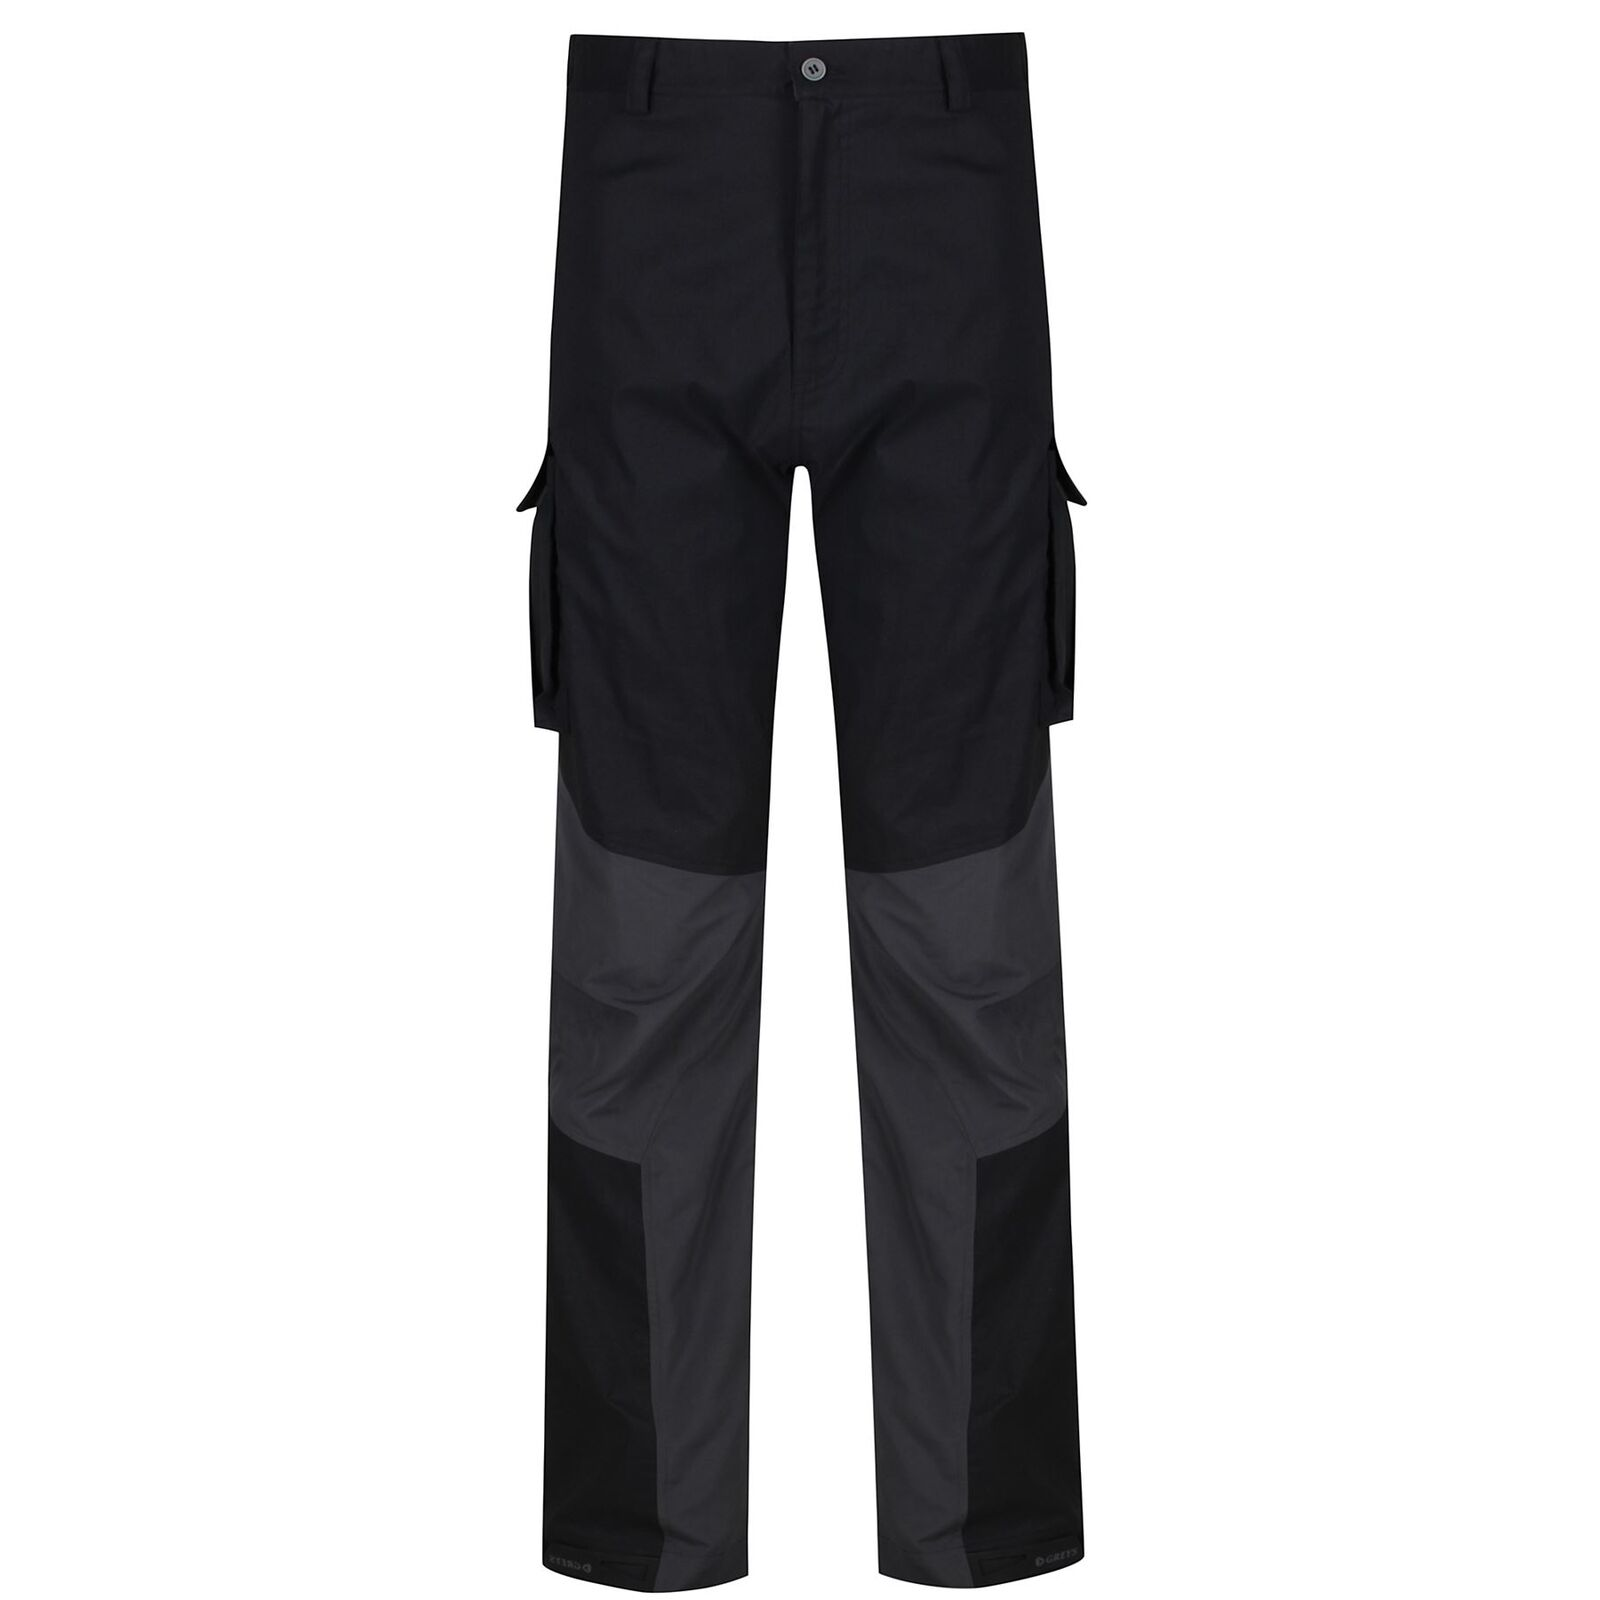 Greys  Technical Fishing Trousers   Fishing Clothing  brand on sale clearance